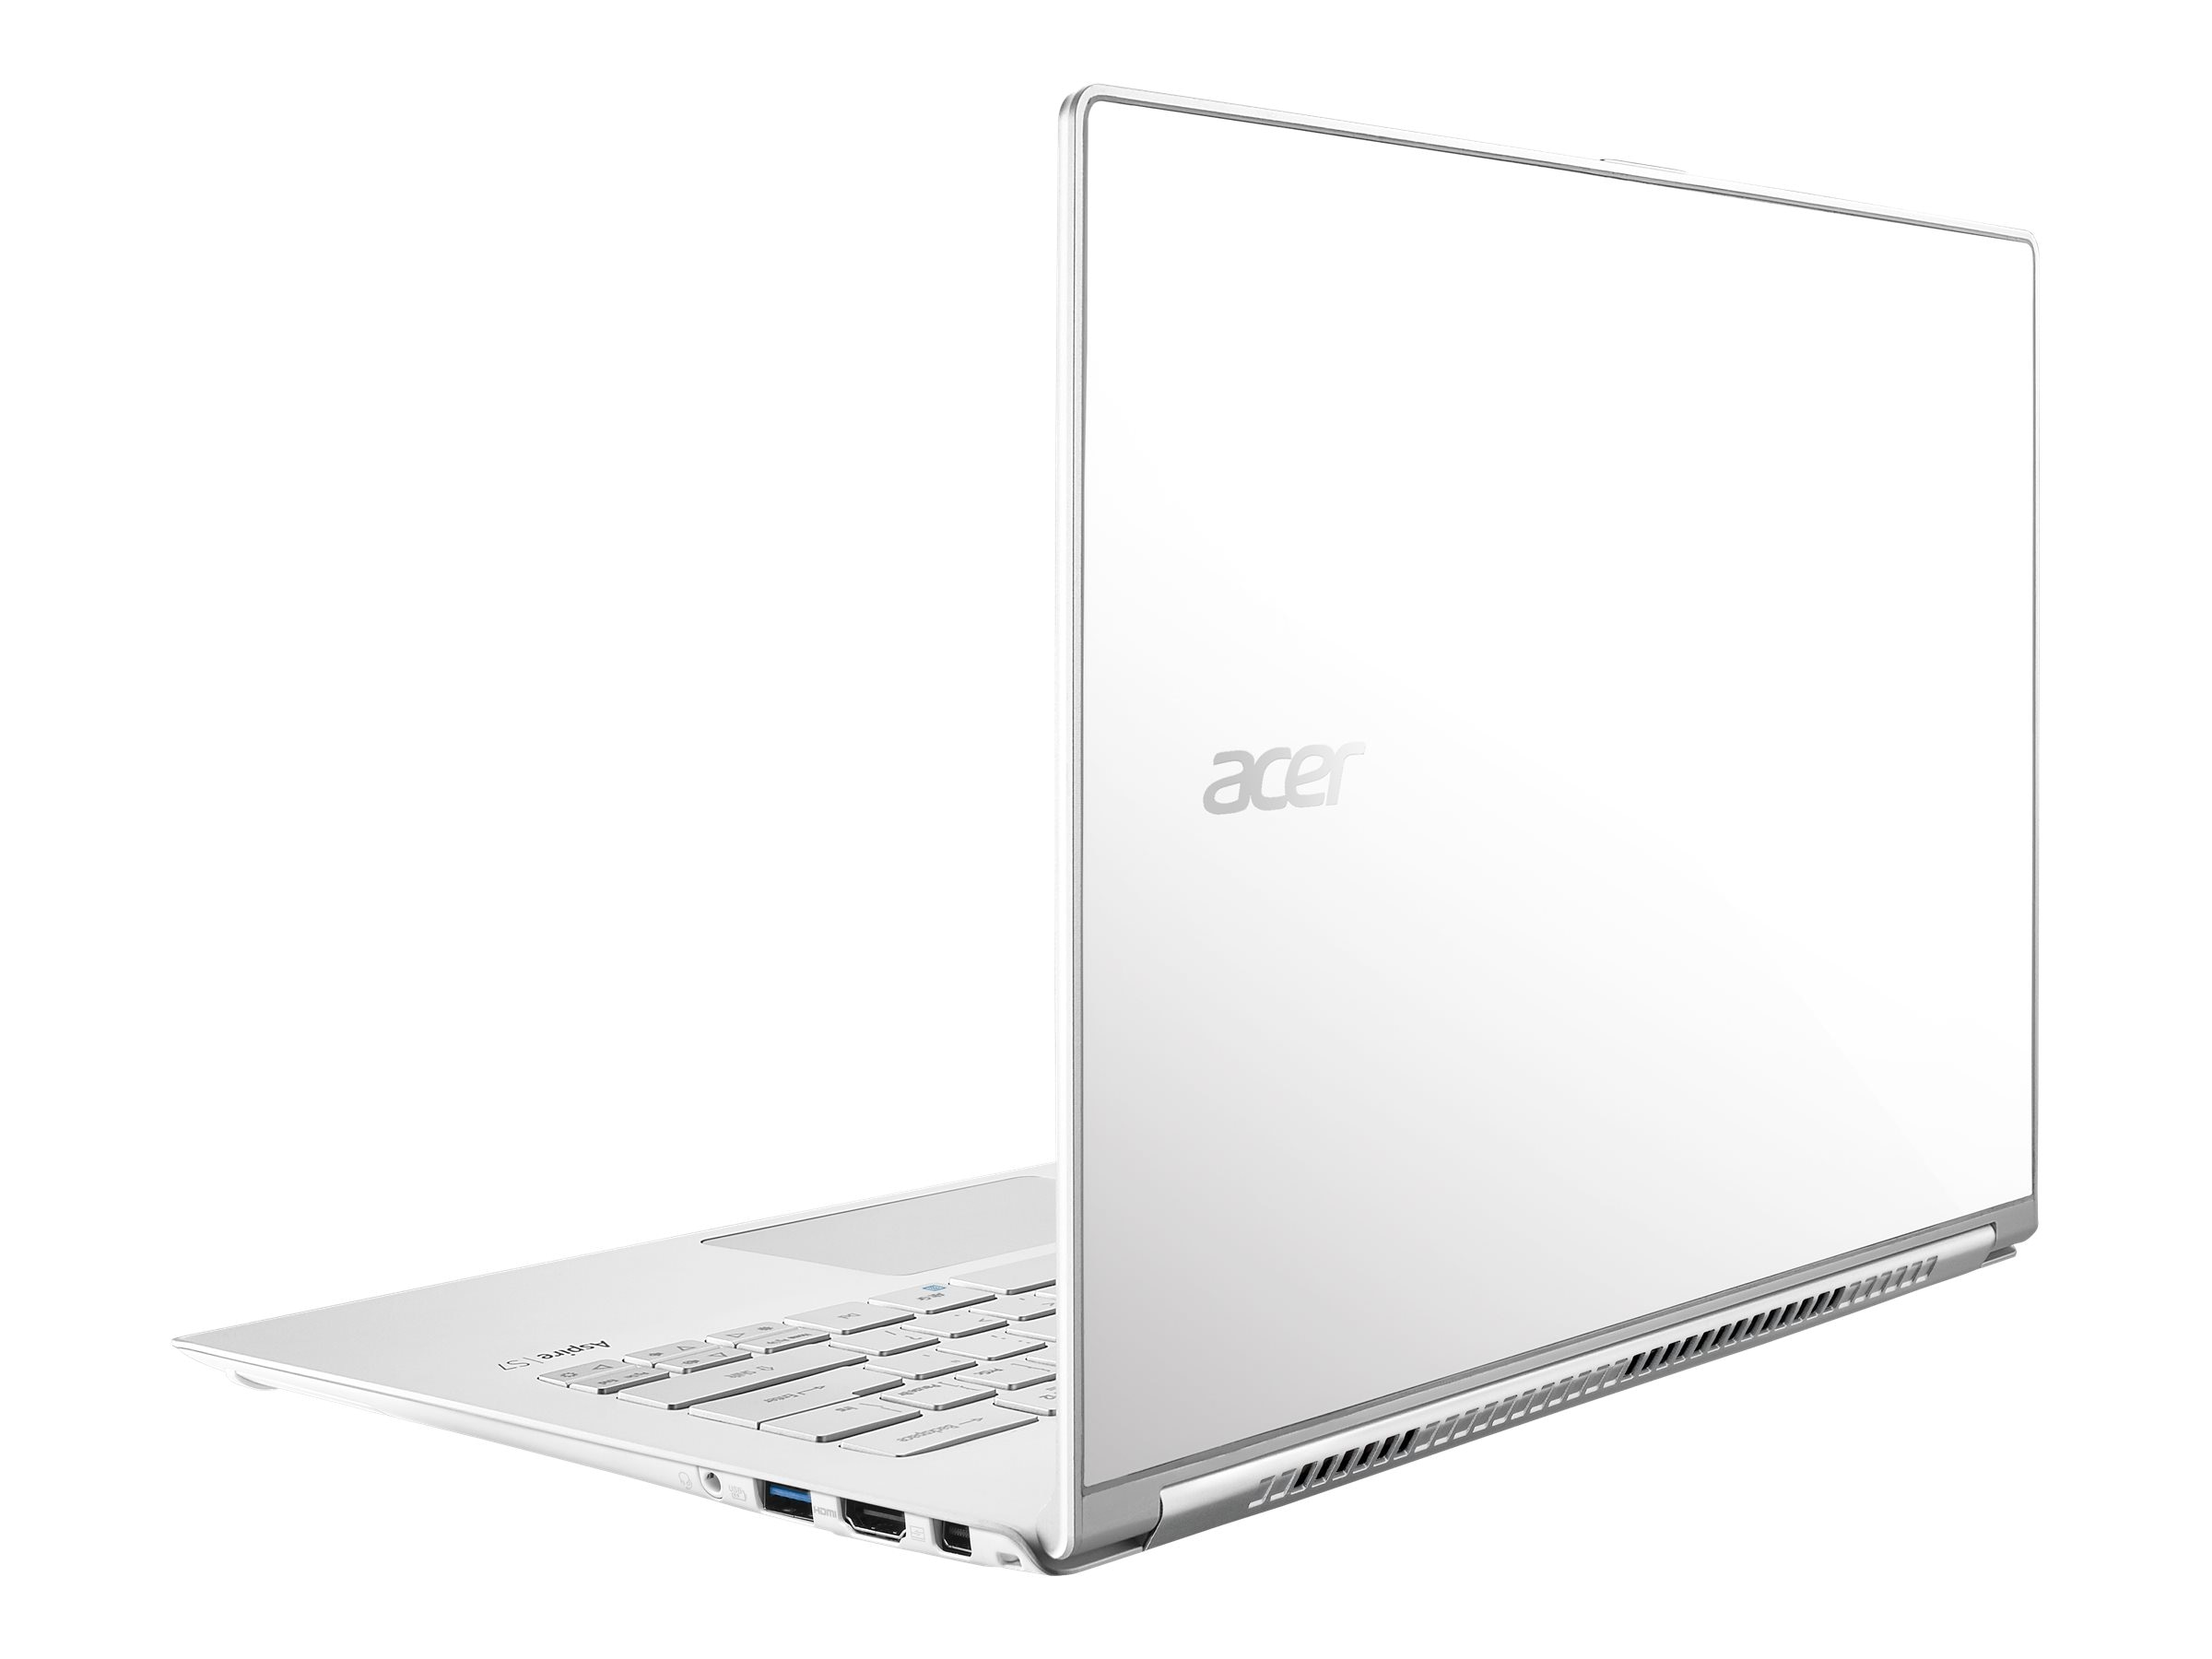 Acer Aspire S7-392-7837 1.8GHz Core i7 13.3in display, NX.MG4AA.013